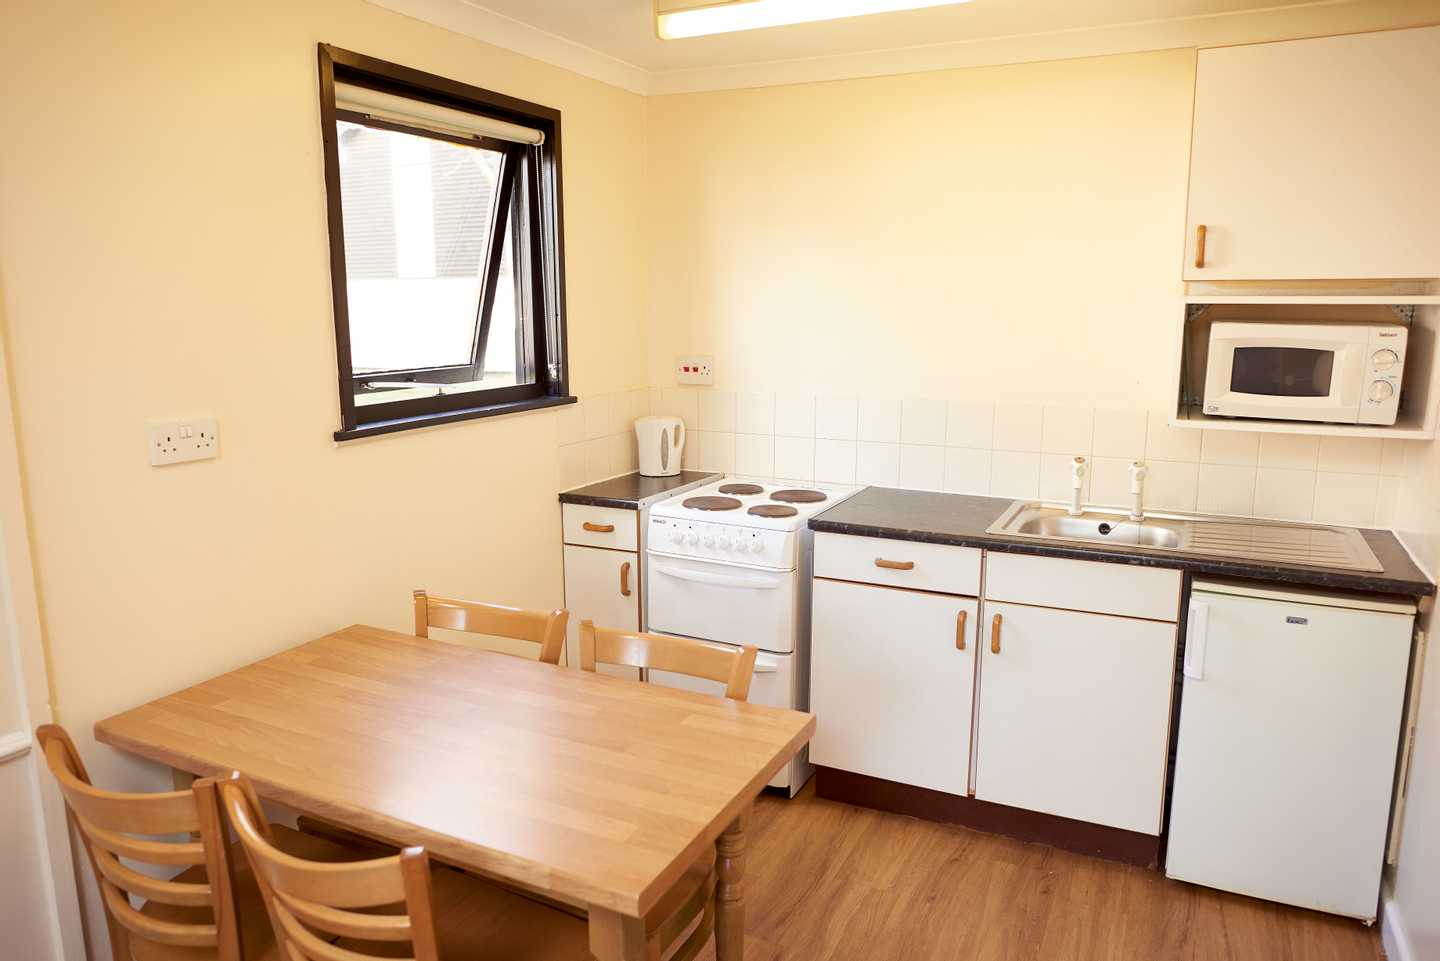 A Standard apartment kitchen with a dining table, chairs, cooker, microwave and kettle